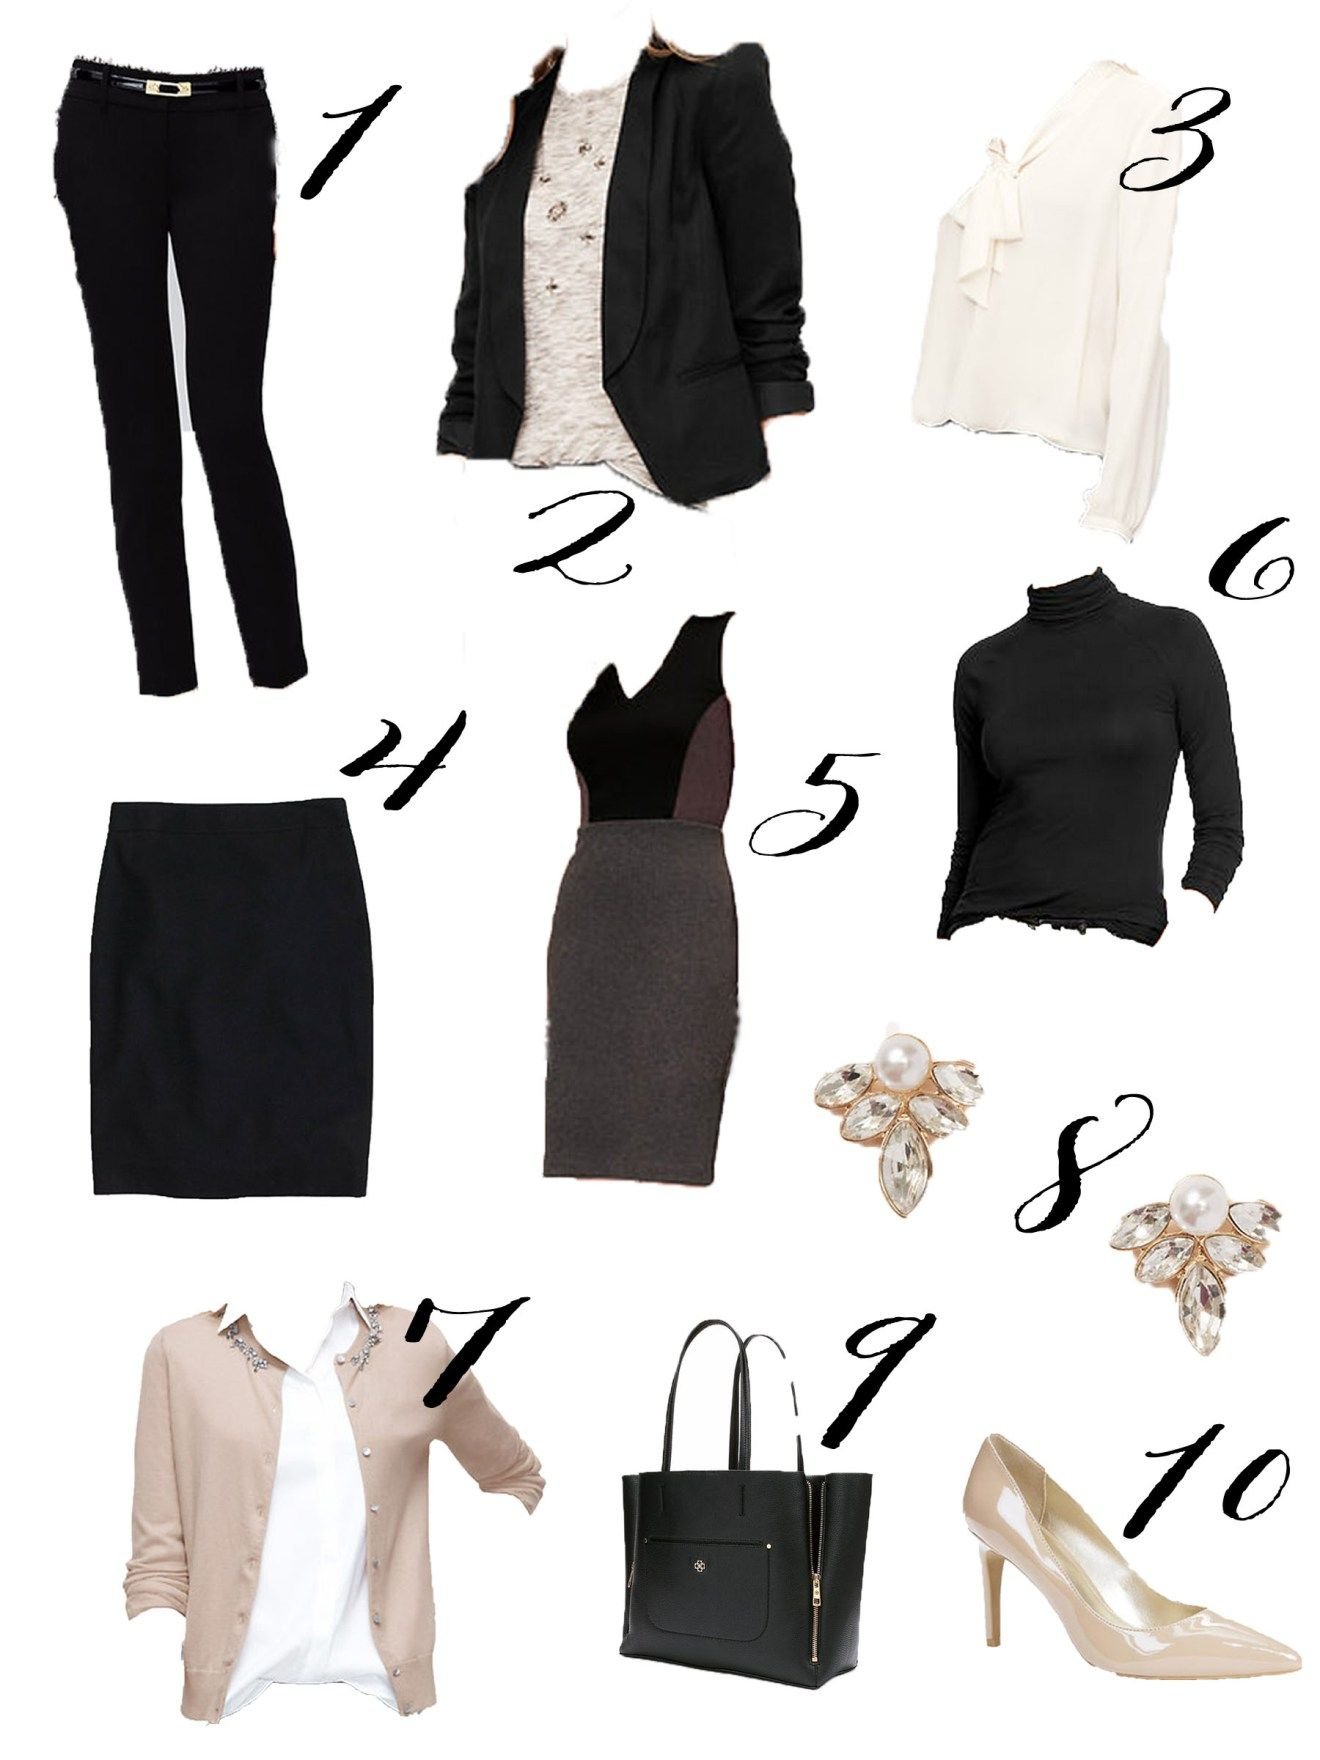 d9448274378 How to Build A Complete Professional Wardrobe Under  500